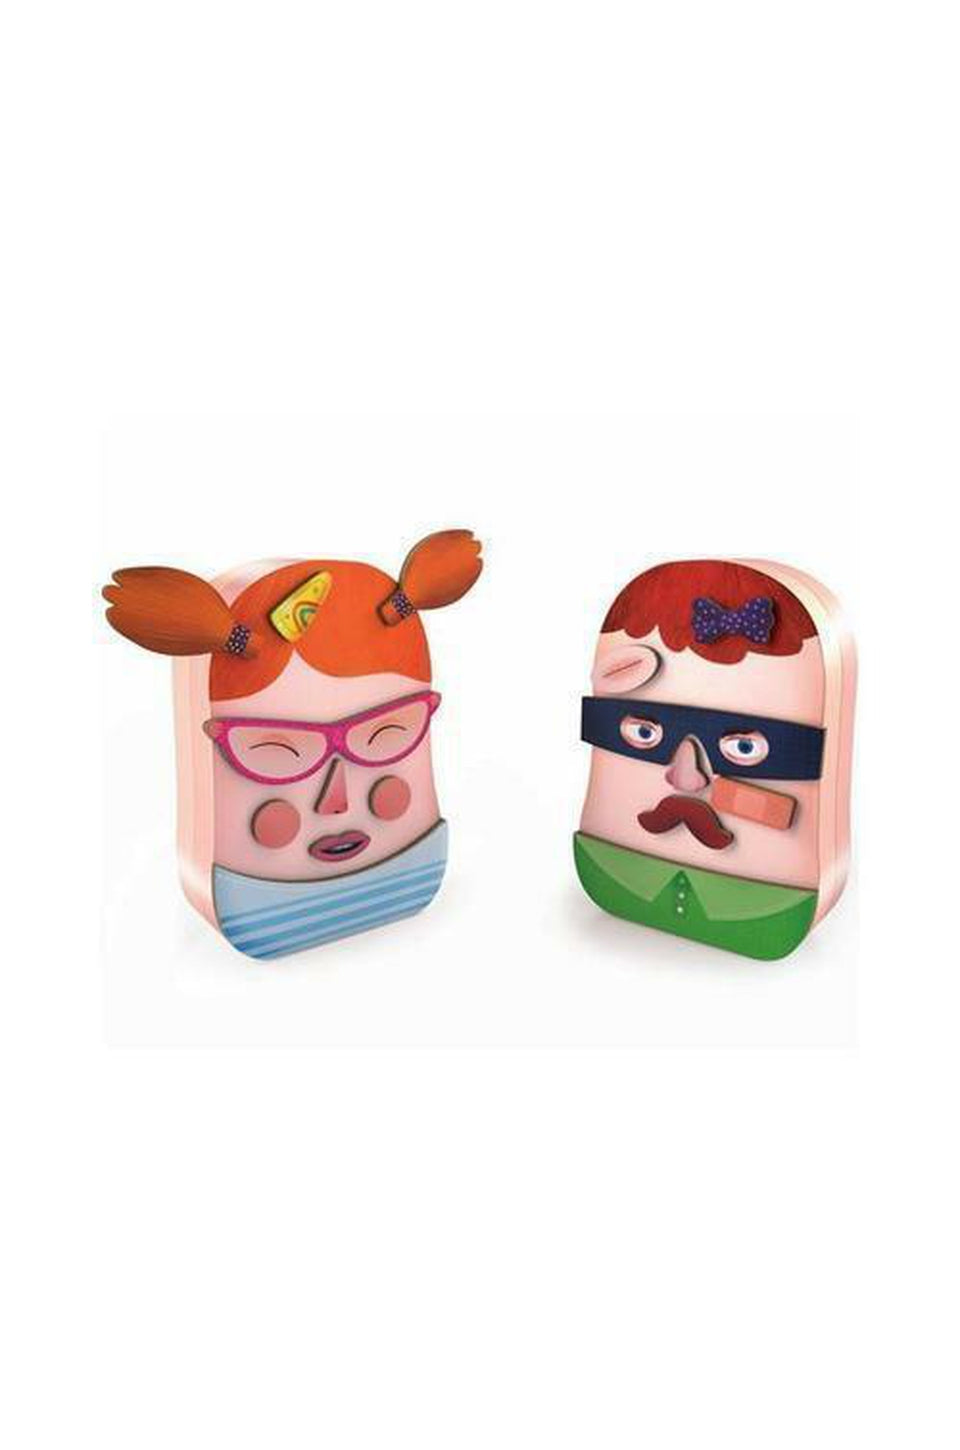 Djeco Wooden Magnetic Portrait Playset Tin Box